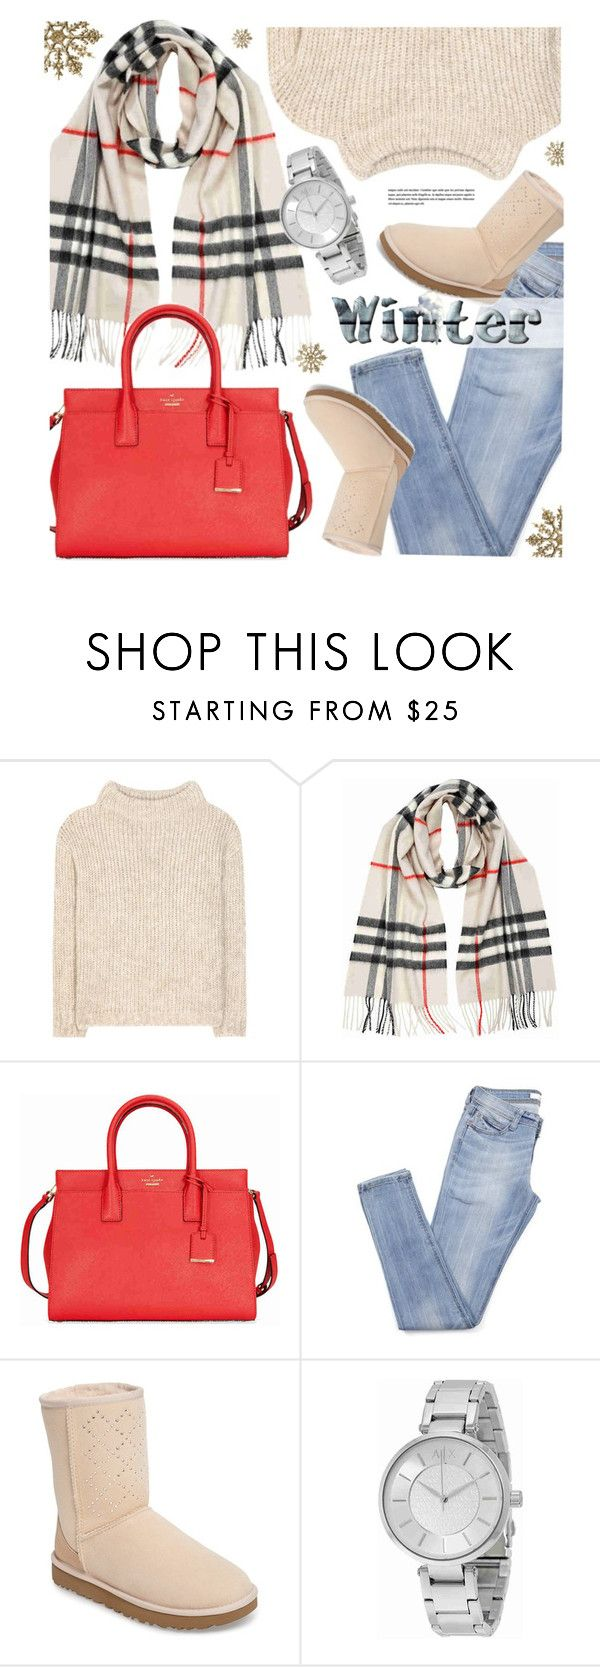 """""""Winter Scarf"""" by jomashop ❤ liked on Polyvore featuring Tom Ford, Burberry, Kate Spade, UGG, Armani Exchange, red, beige and scarf"""